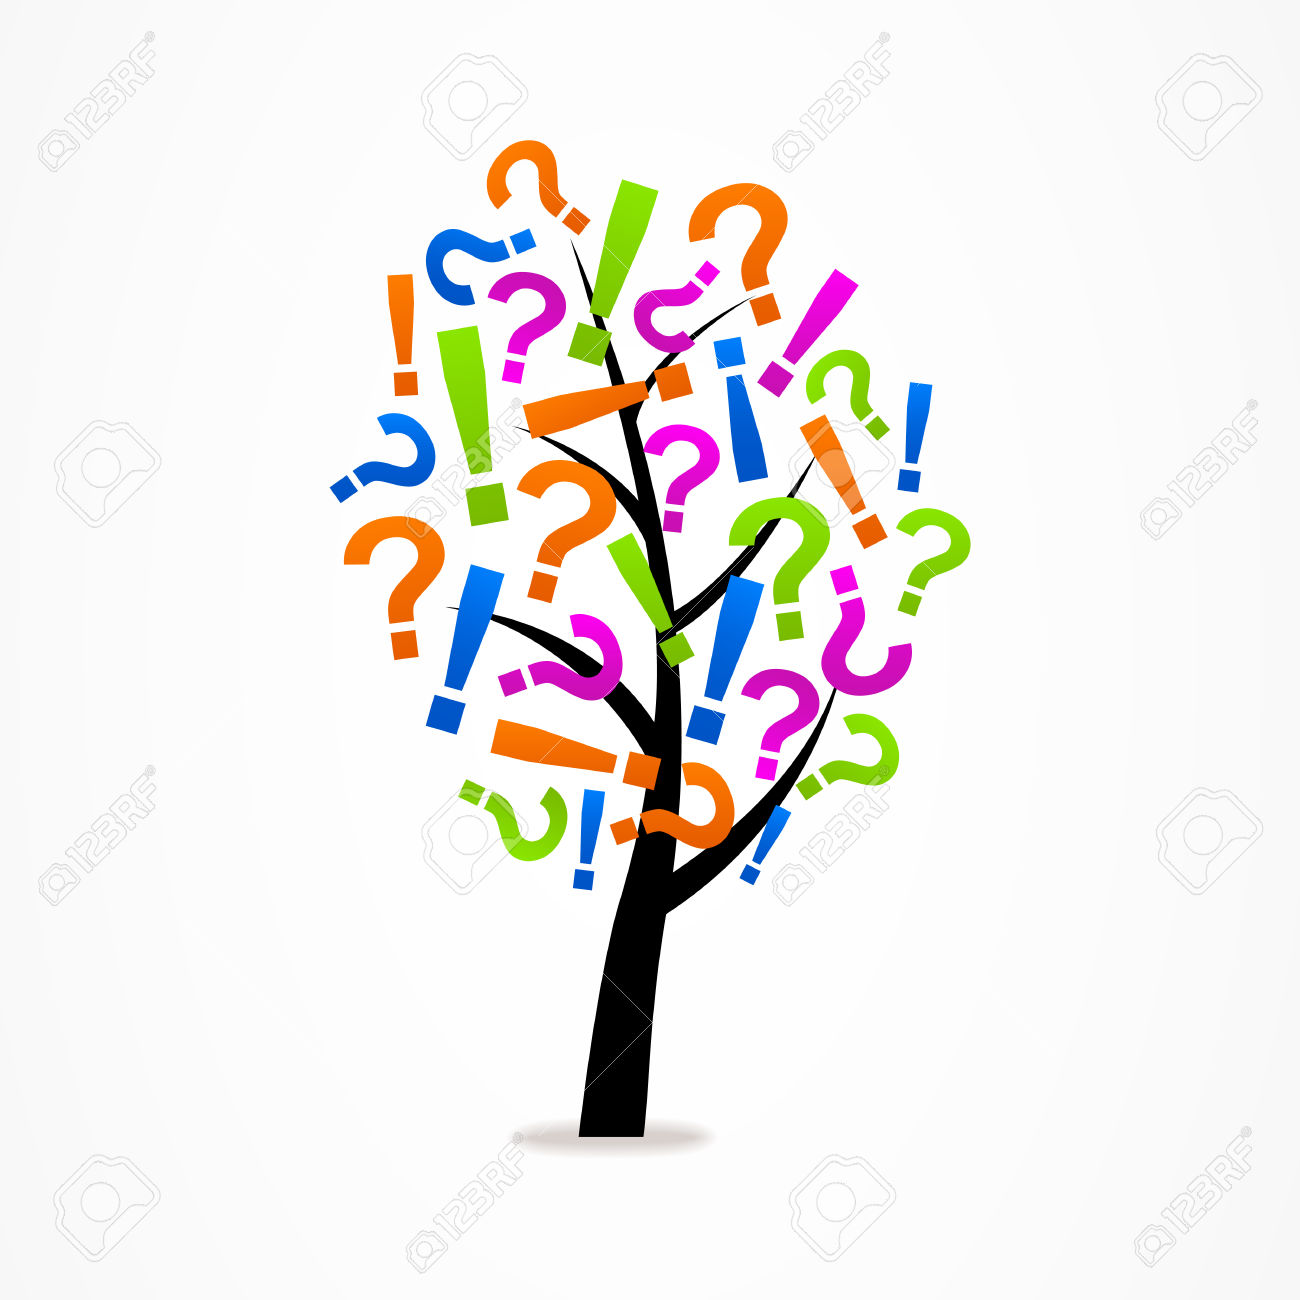 Tree Exclamation Mark And Question Mark Royalty Free Cliparts.